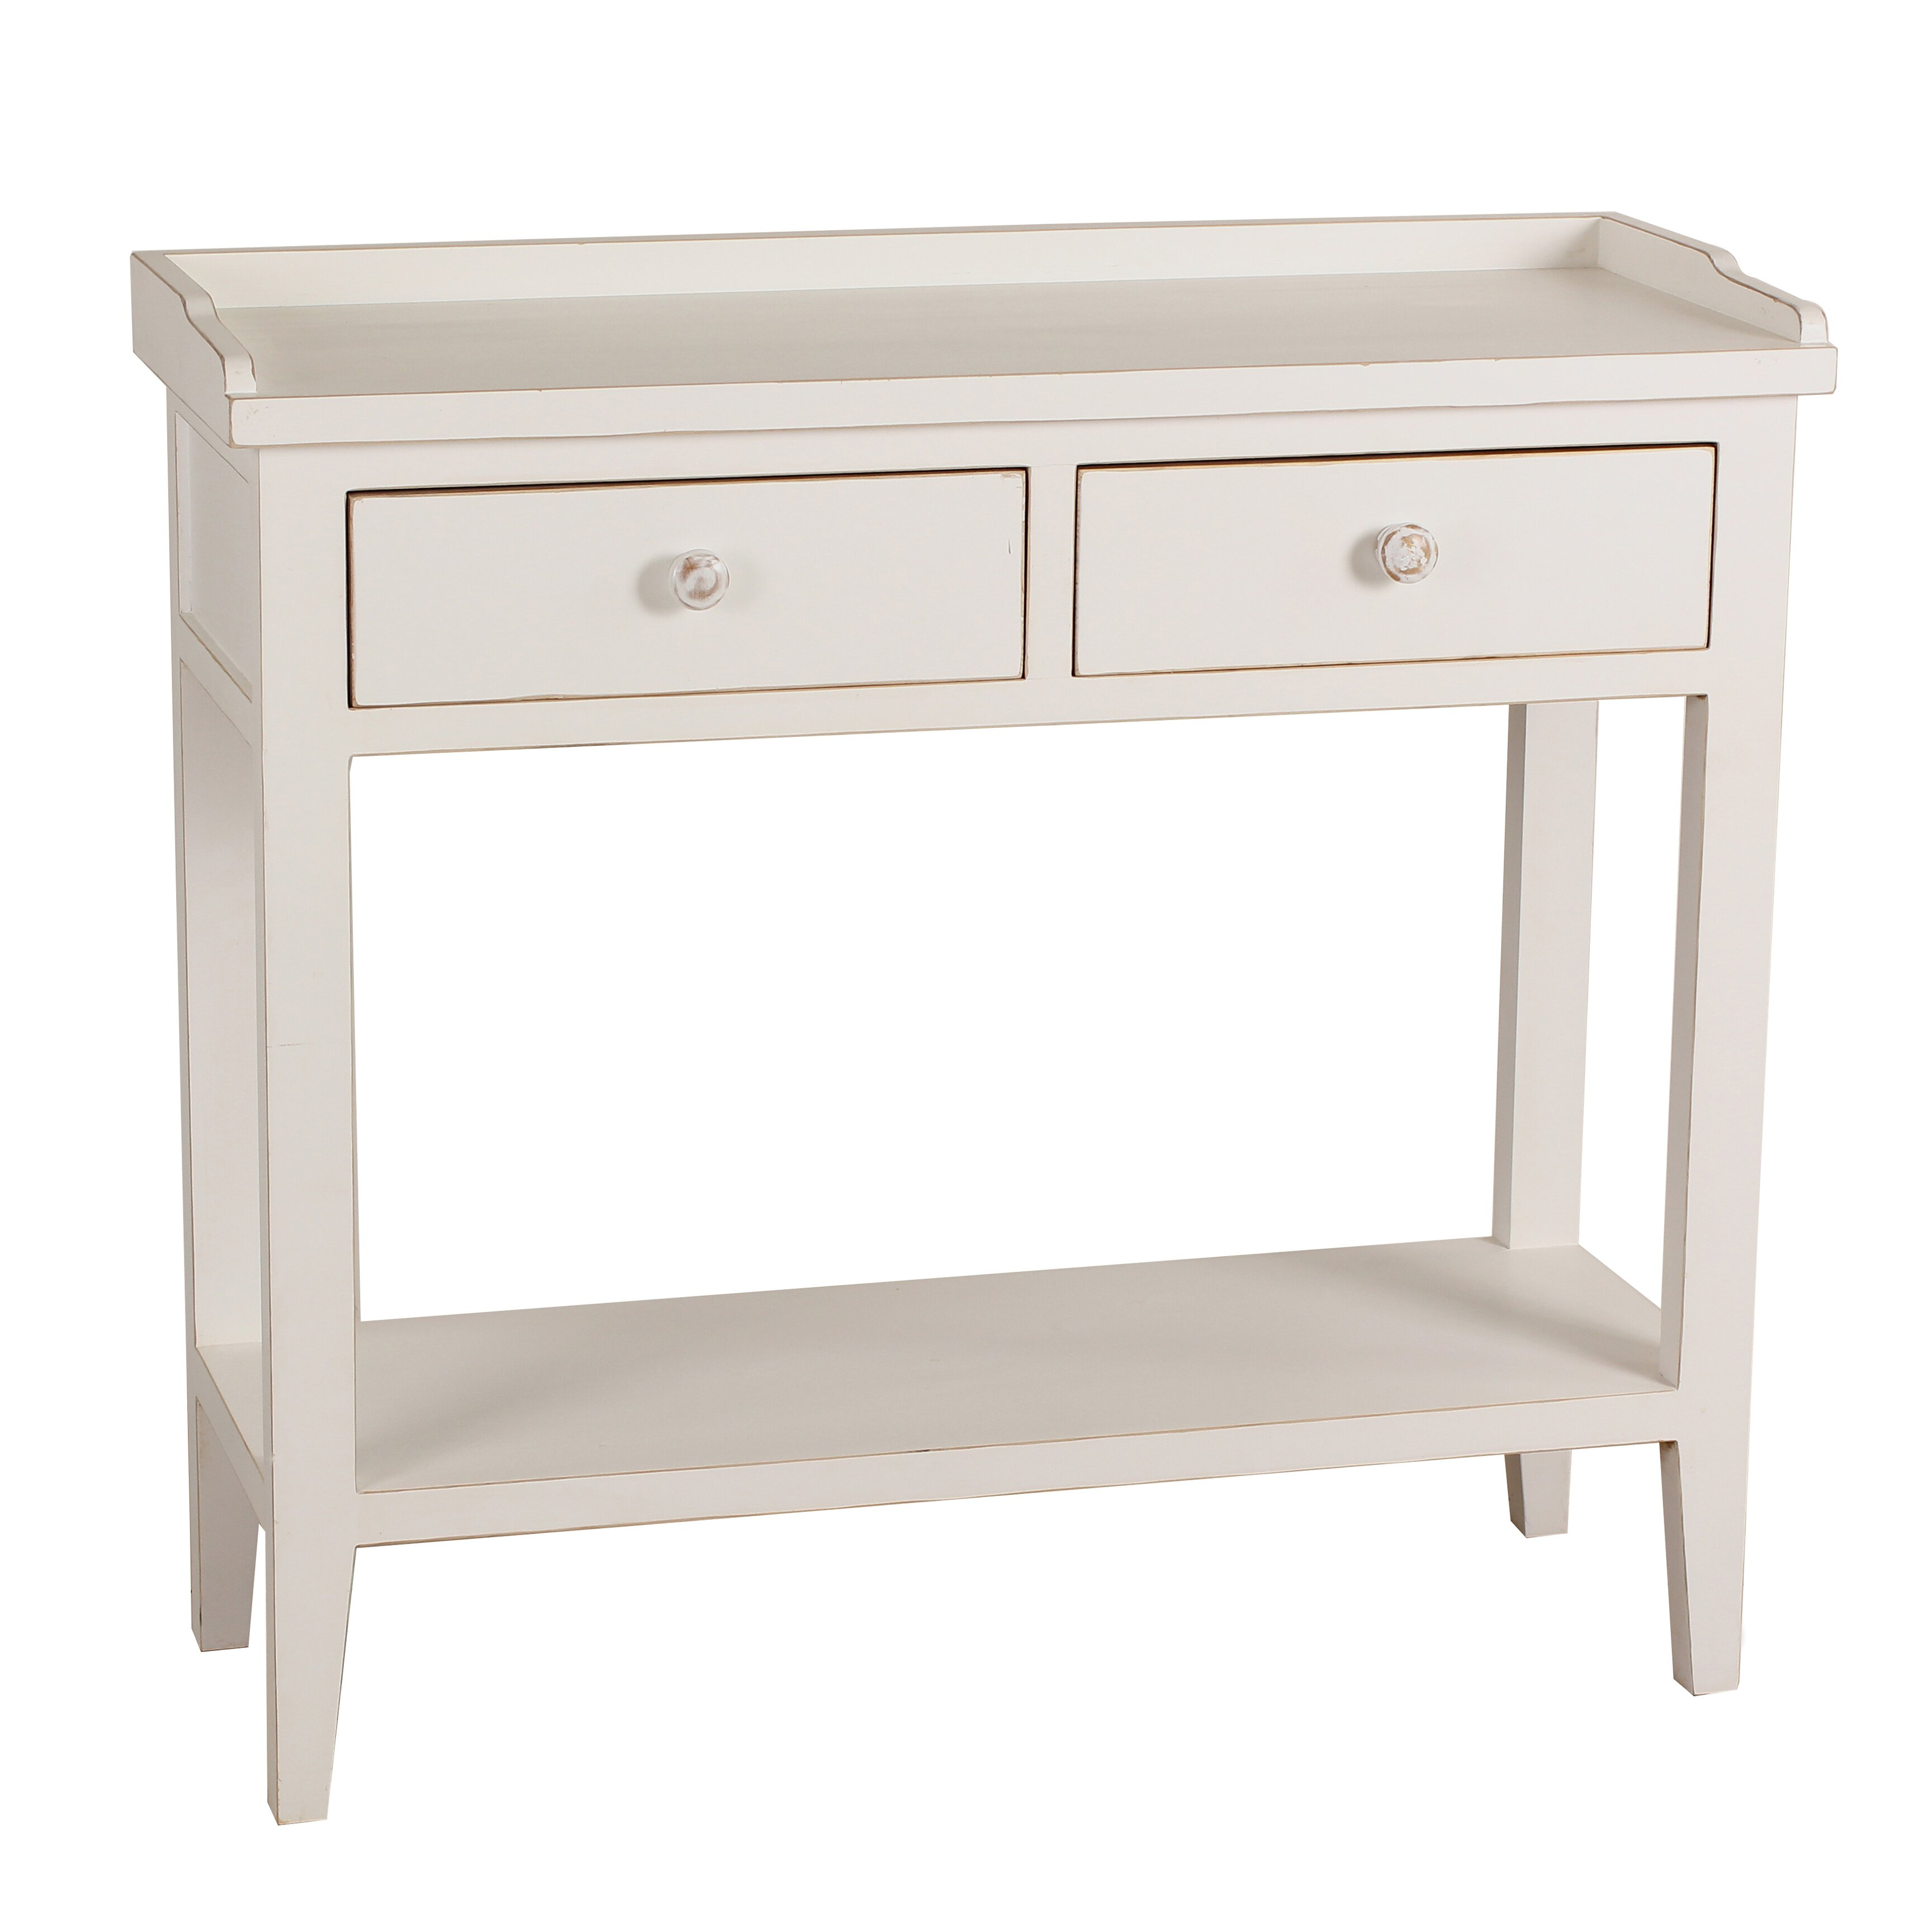 Porthos home donny console table reviews for 5 sofa table